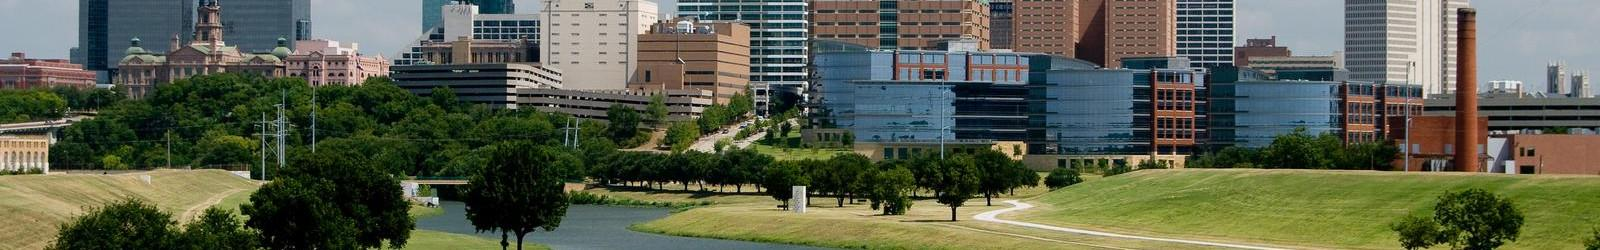 Therapists in Fort Worth, Texas: psychologists, counselors, and mental health specialists